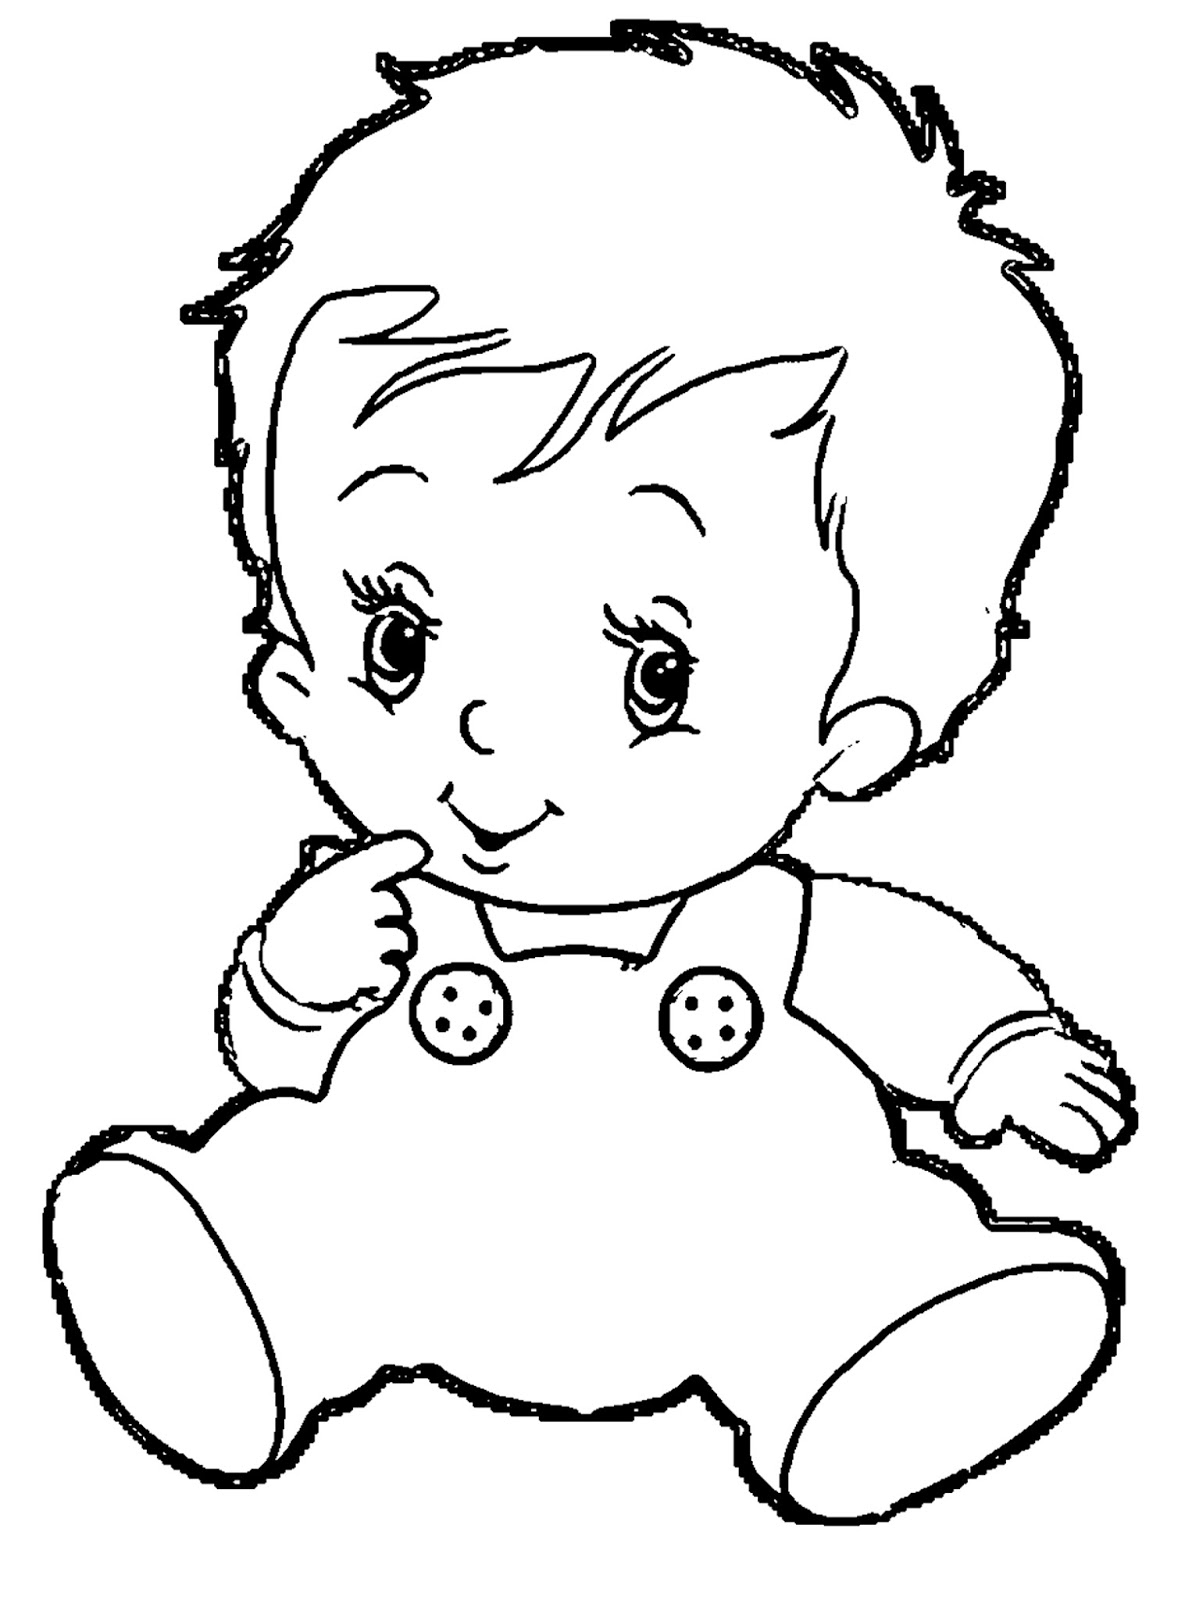 Black And White Baby Clipart : black, white, clipart, Clipart, Black, White,, White, Transparent, Download, WebStockReview